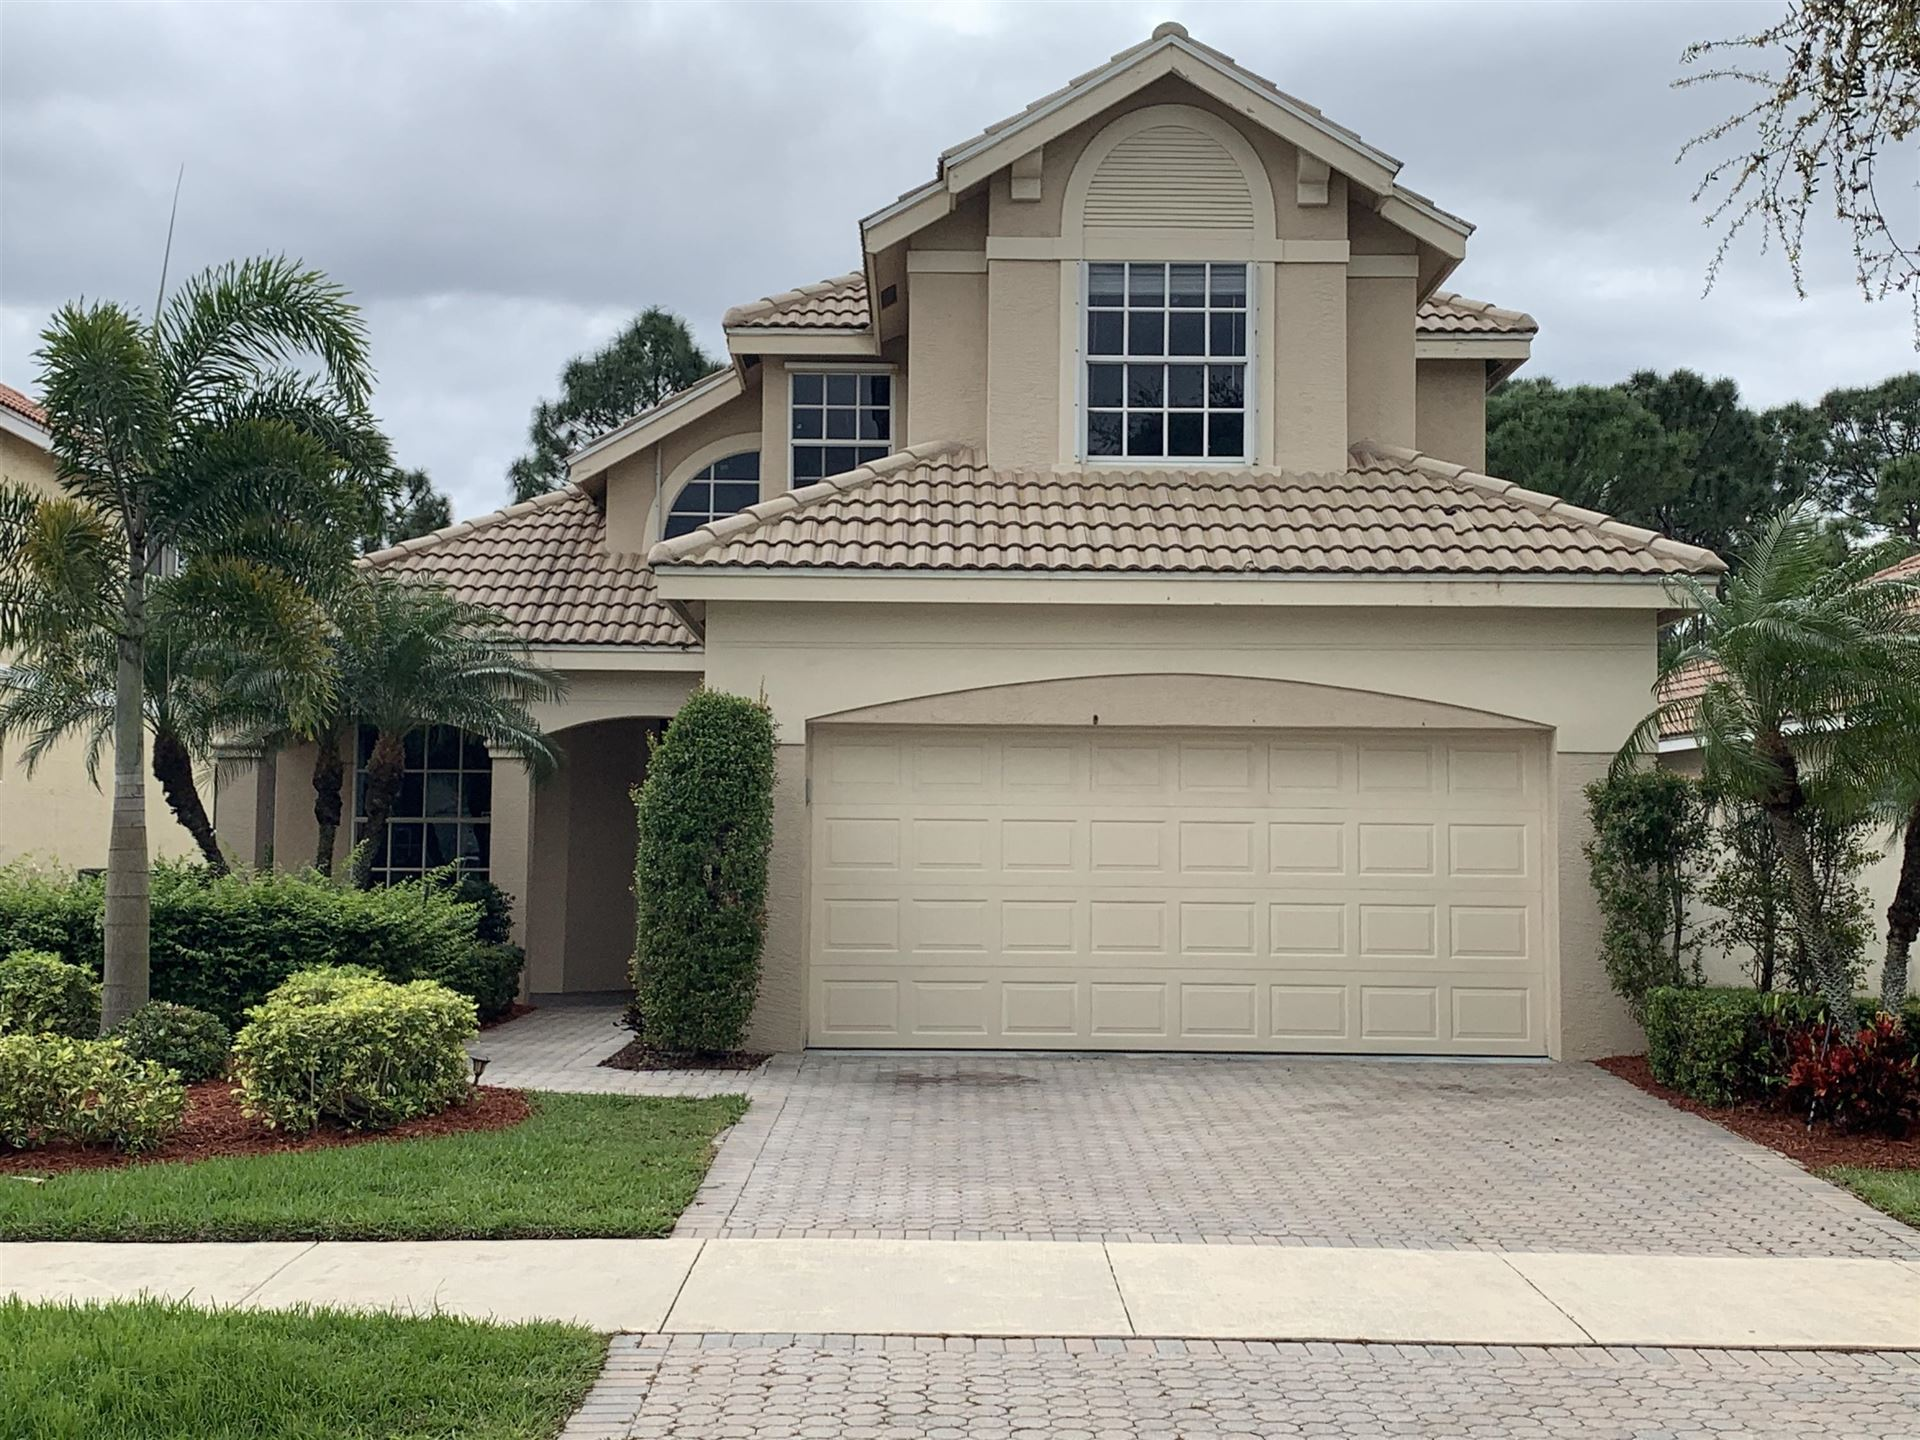 891 SW Munjack Circle, Port Saint Lucie, FL 34984 - MLS#: RX-10698396